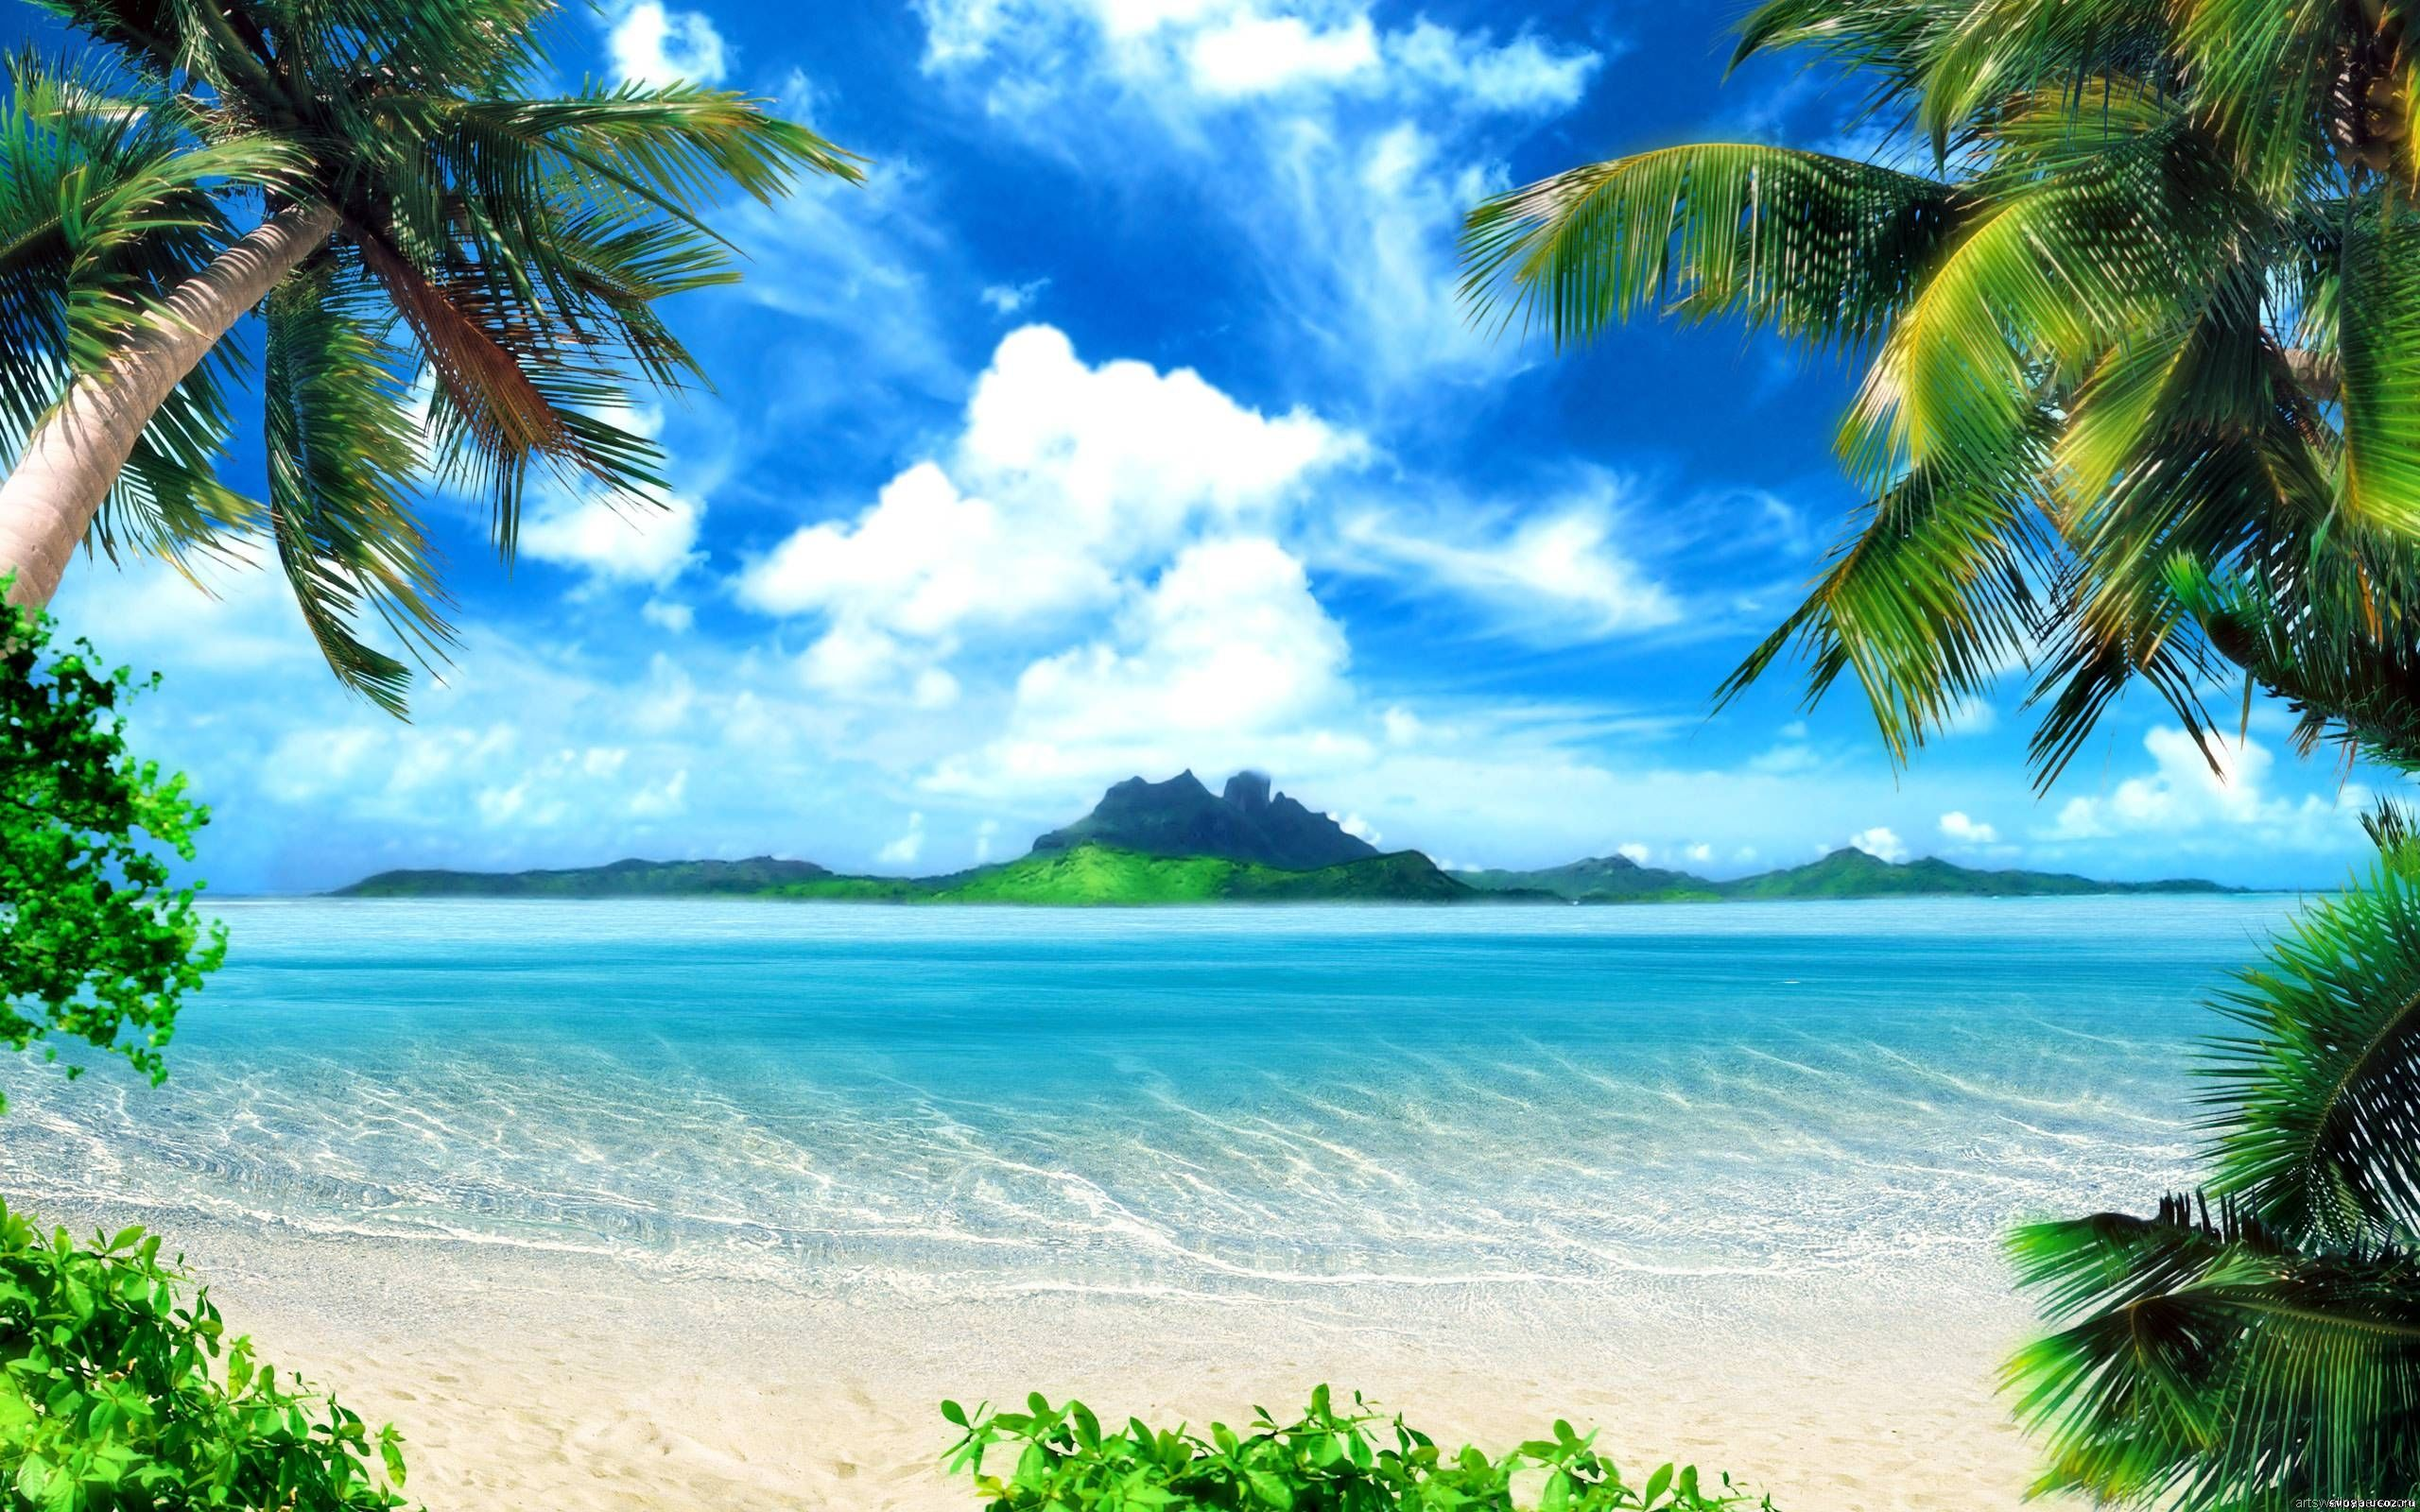 Hd Tropical Island Beach Paradise Wallpapers And Backgrounds: Sea Ocean Wallpaper, HD, Full HD